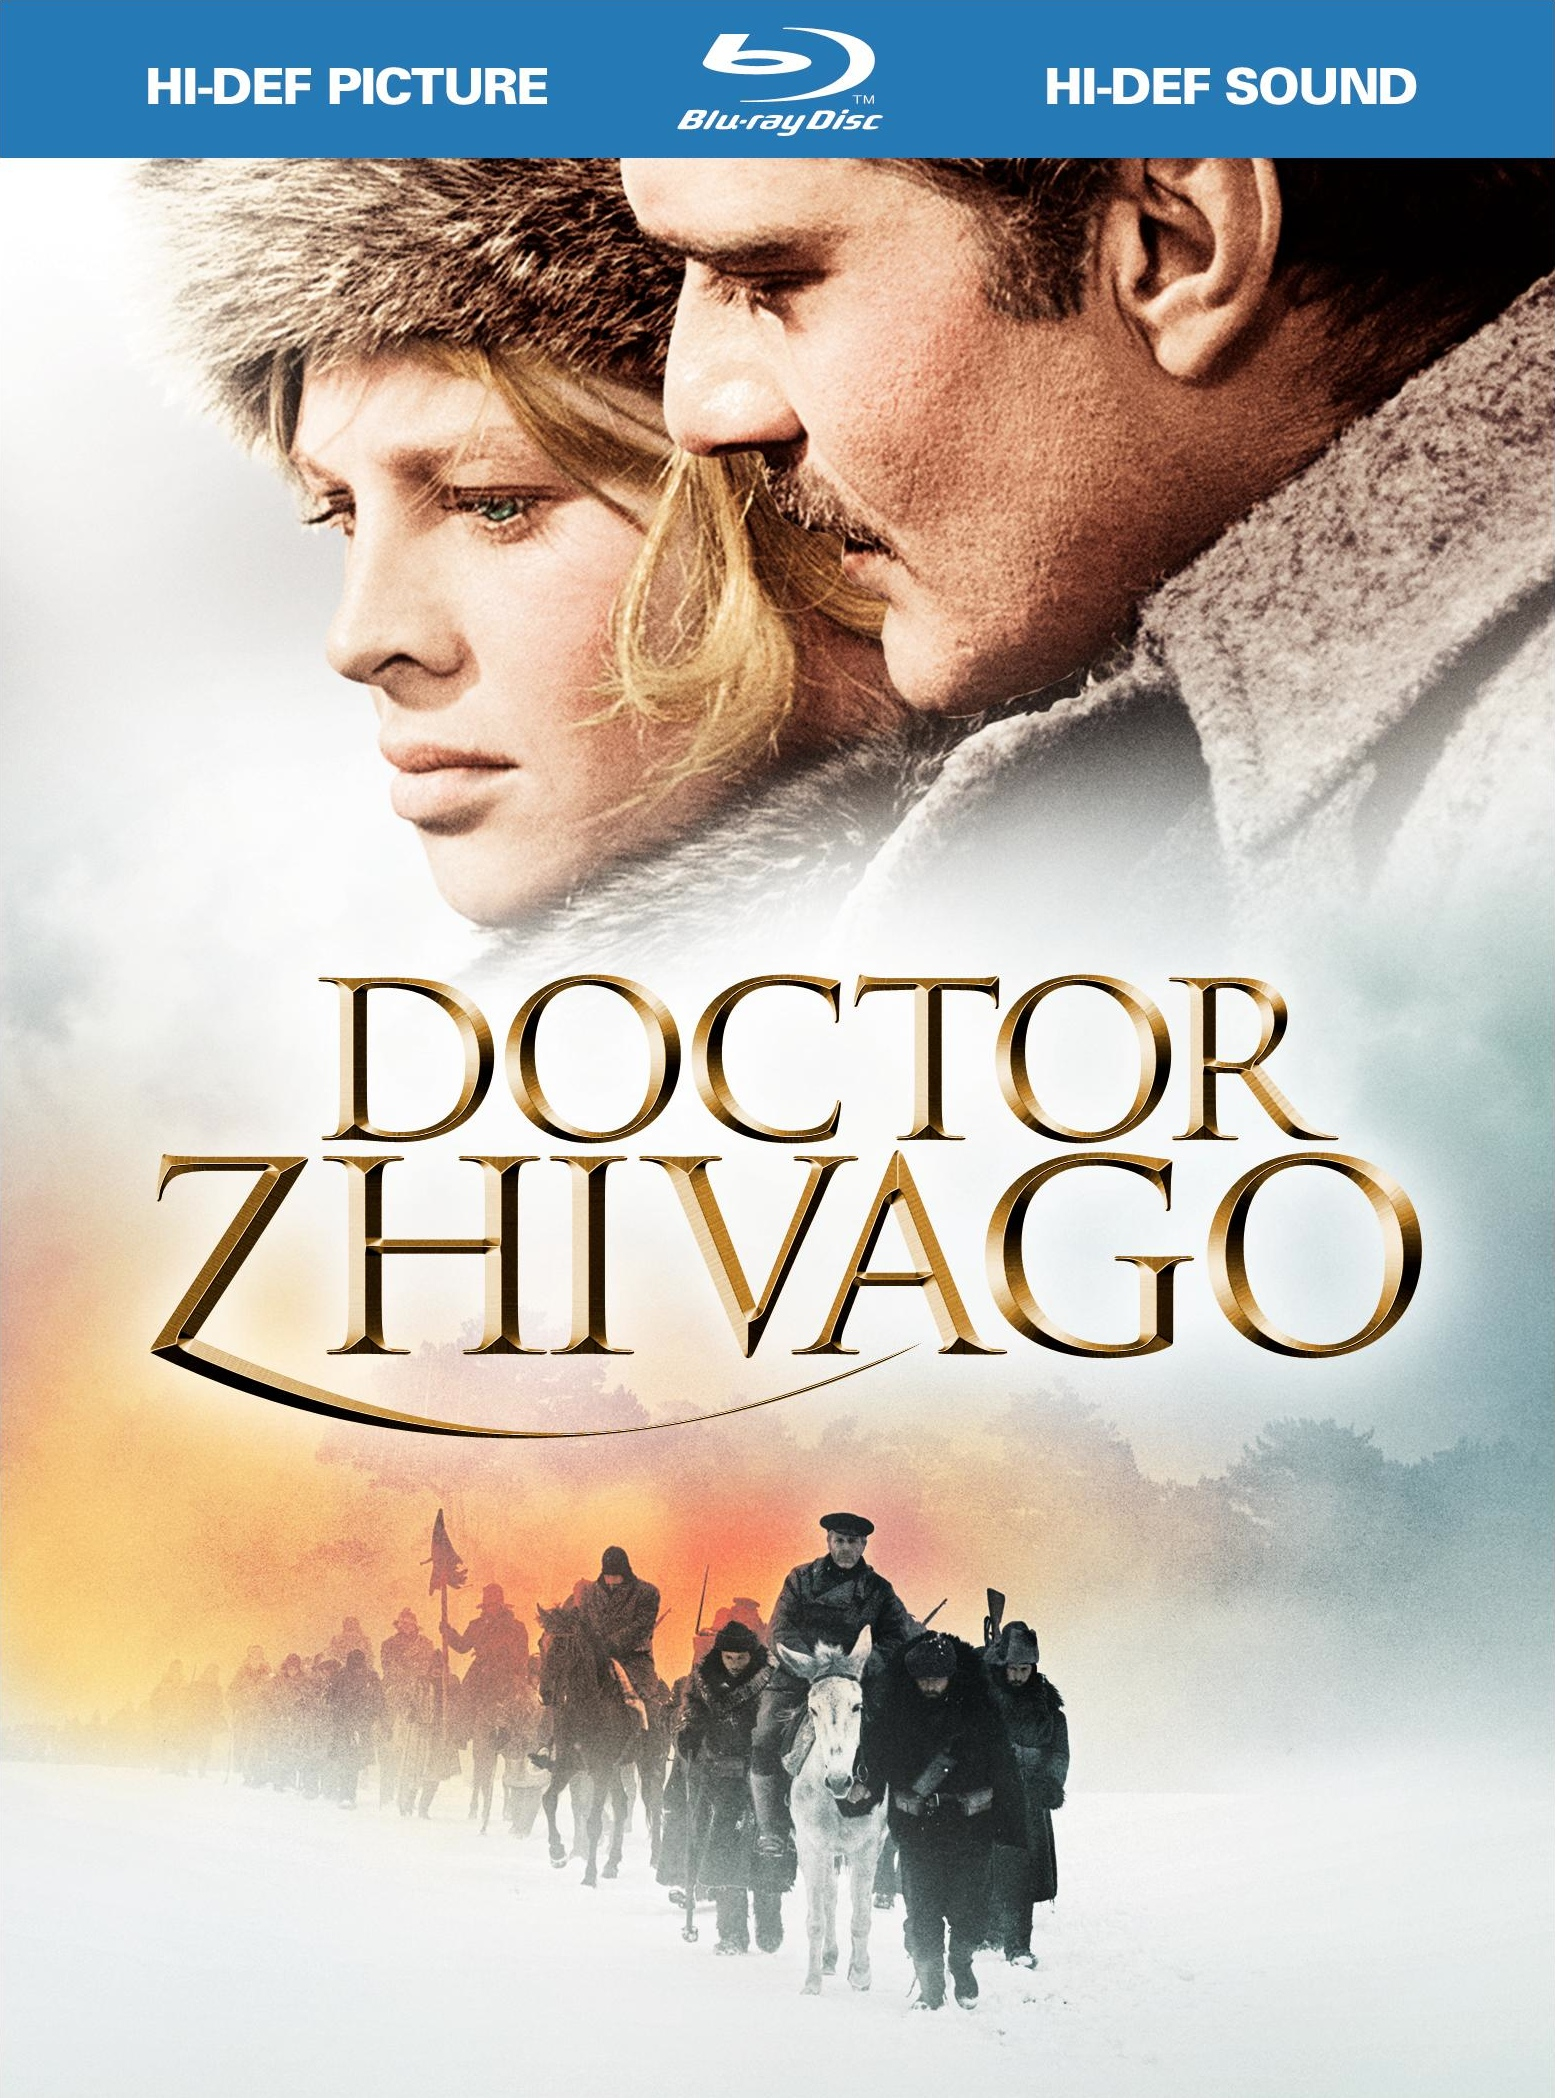 doctor zhivago essay topics Doctor zhivago homework help questions i need to do an analysis of the poems of yuri zhivago and show the connections between them and an analysis of all yuri's 25 poems, occupying book two.